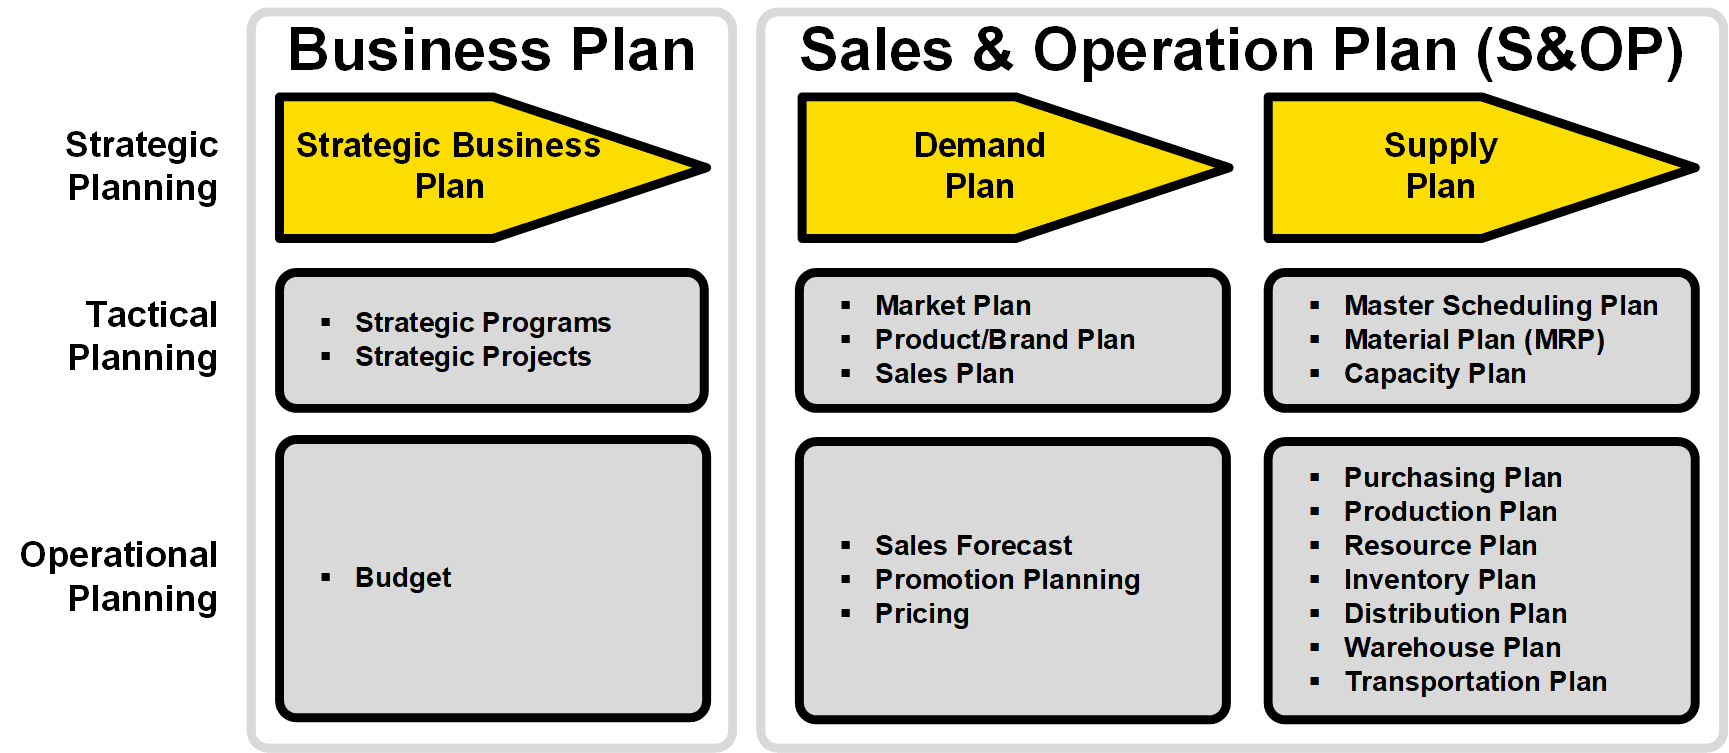 Sales Plan | The Lost Link To Make Strategy Work Sales Operations Planning